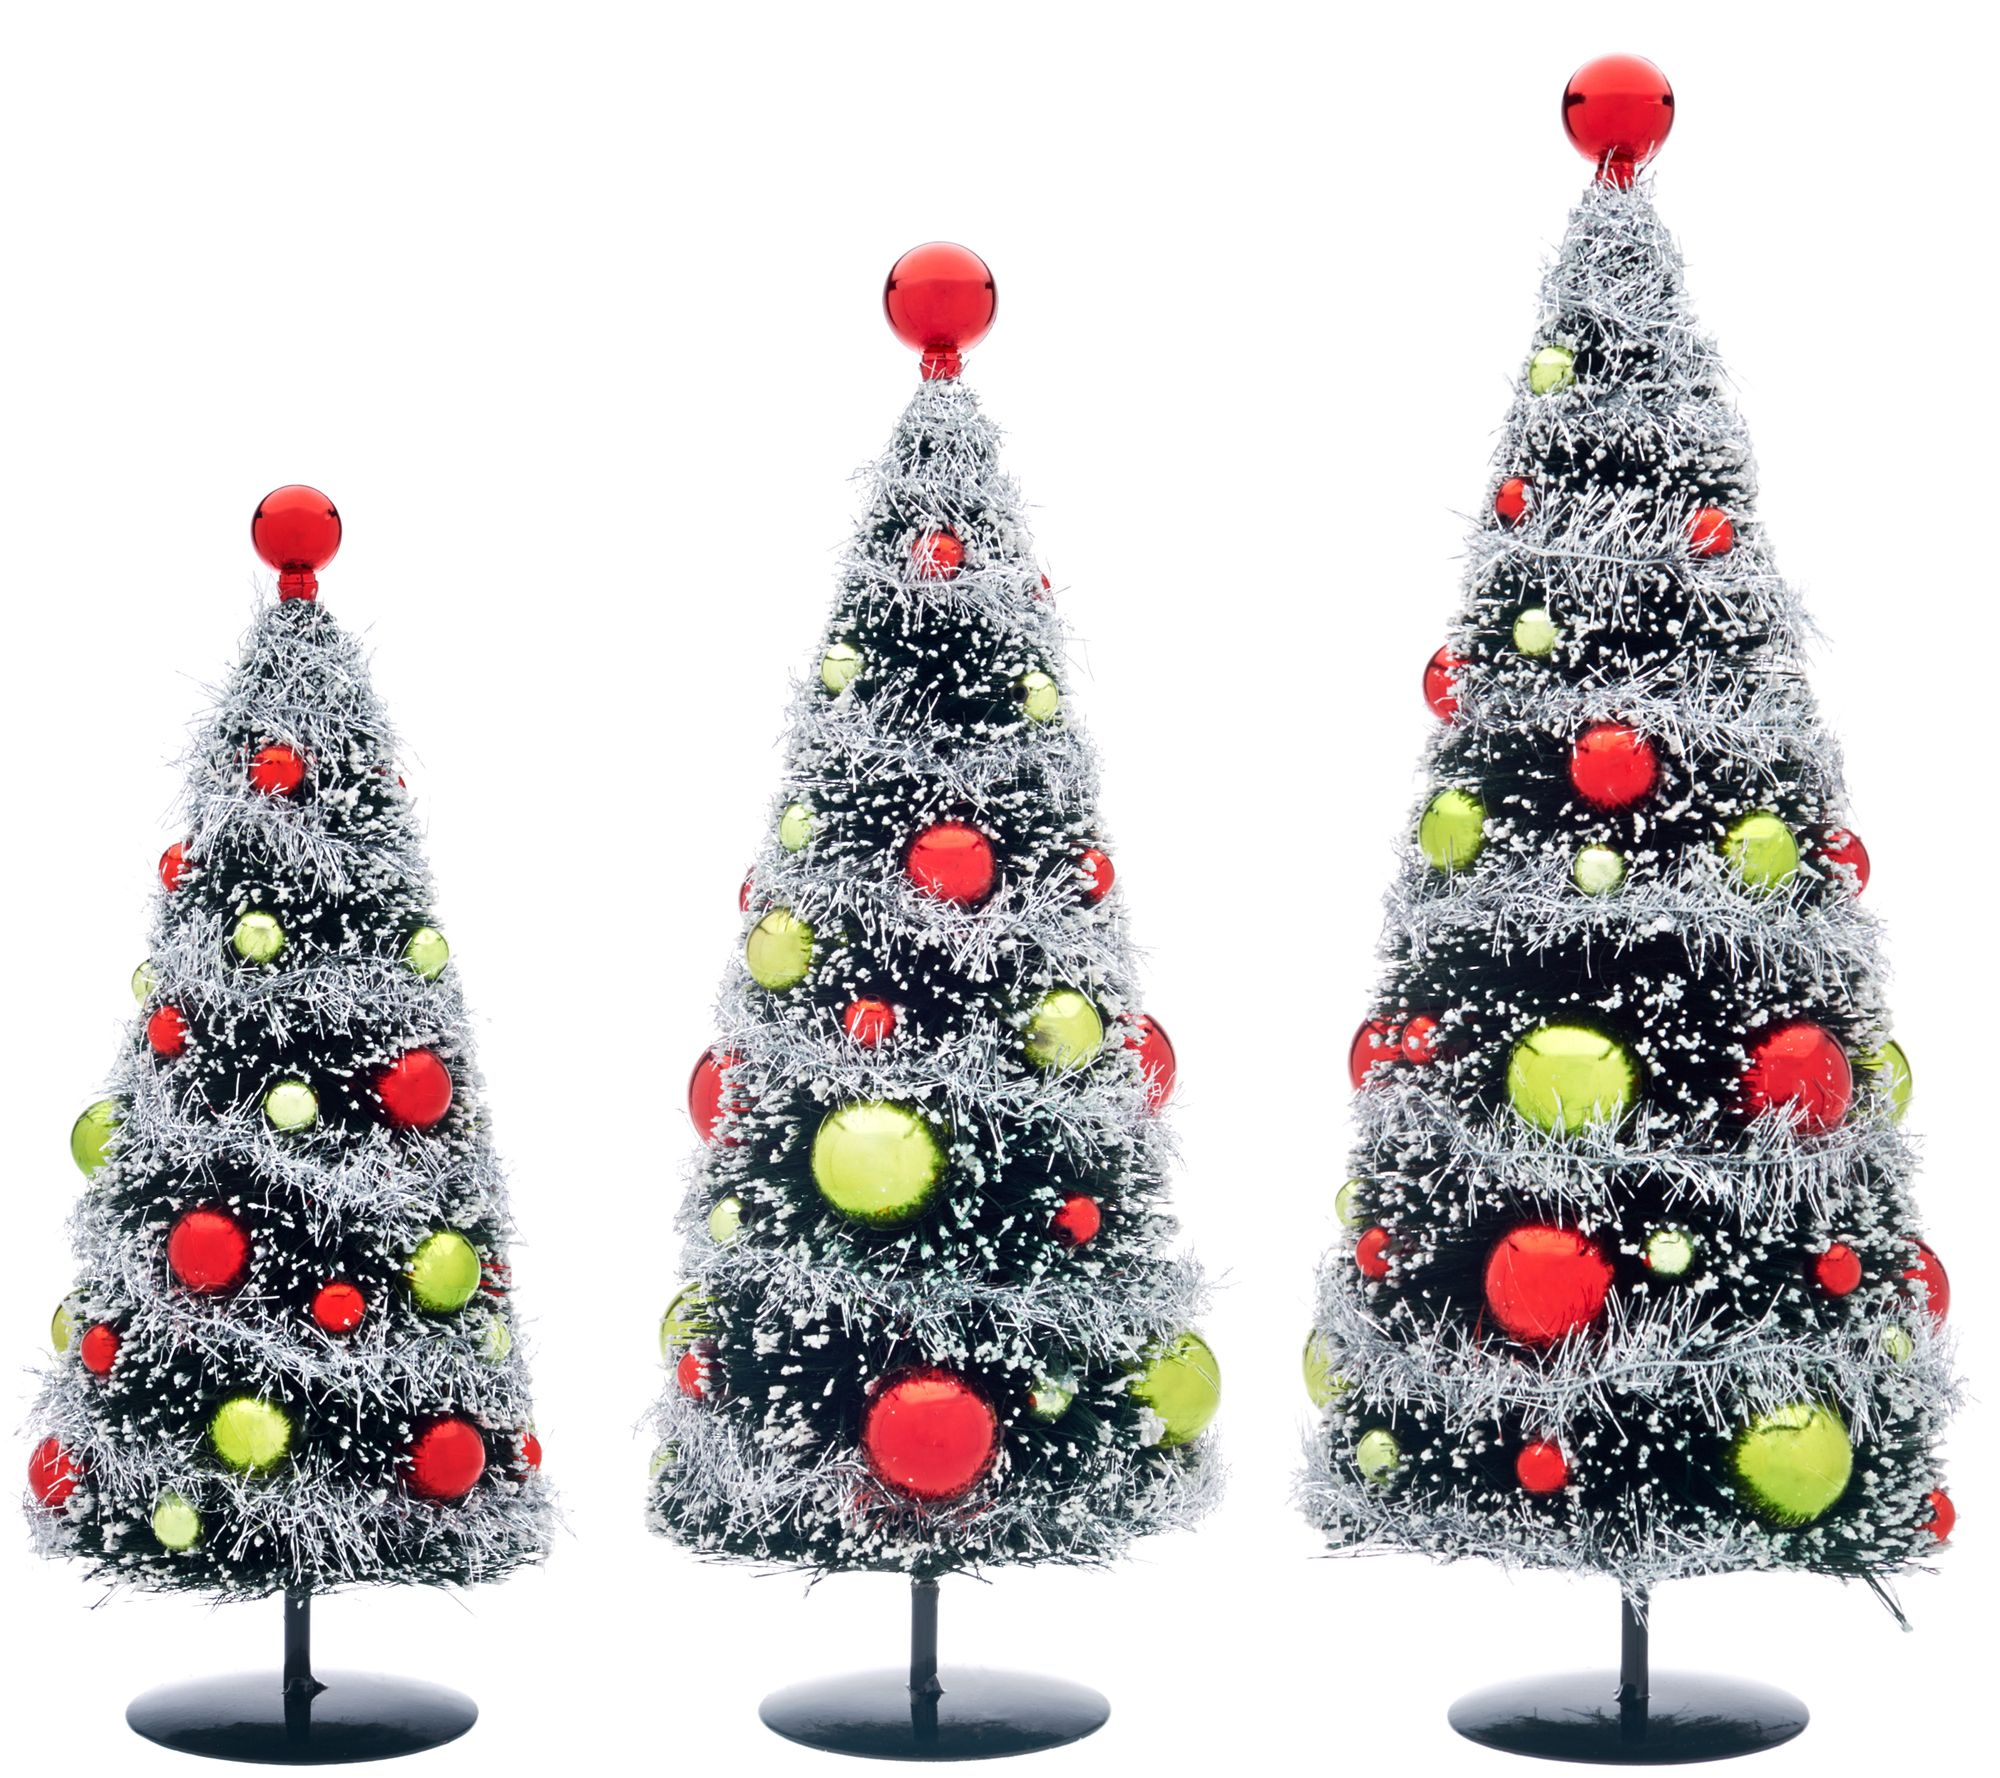 Set of 3 Bottlebrush Trees with Ornaments by Valerie - H208702